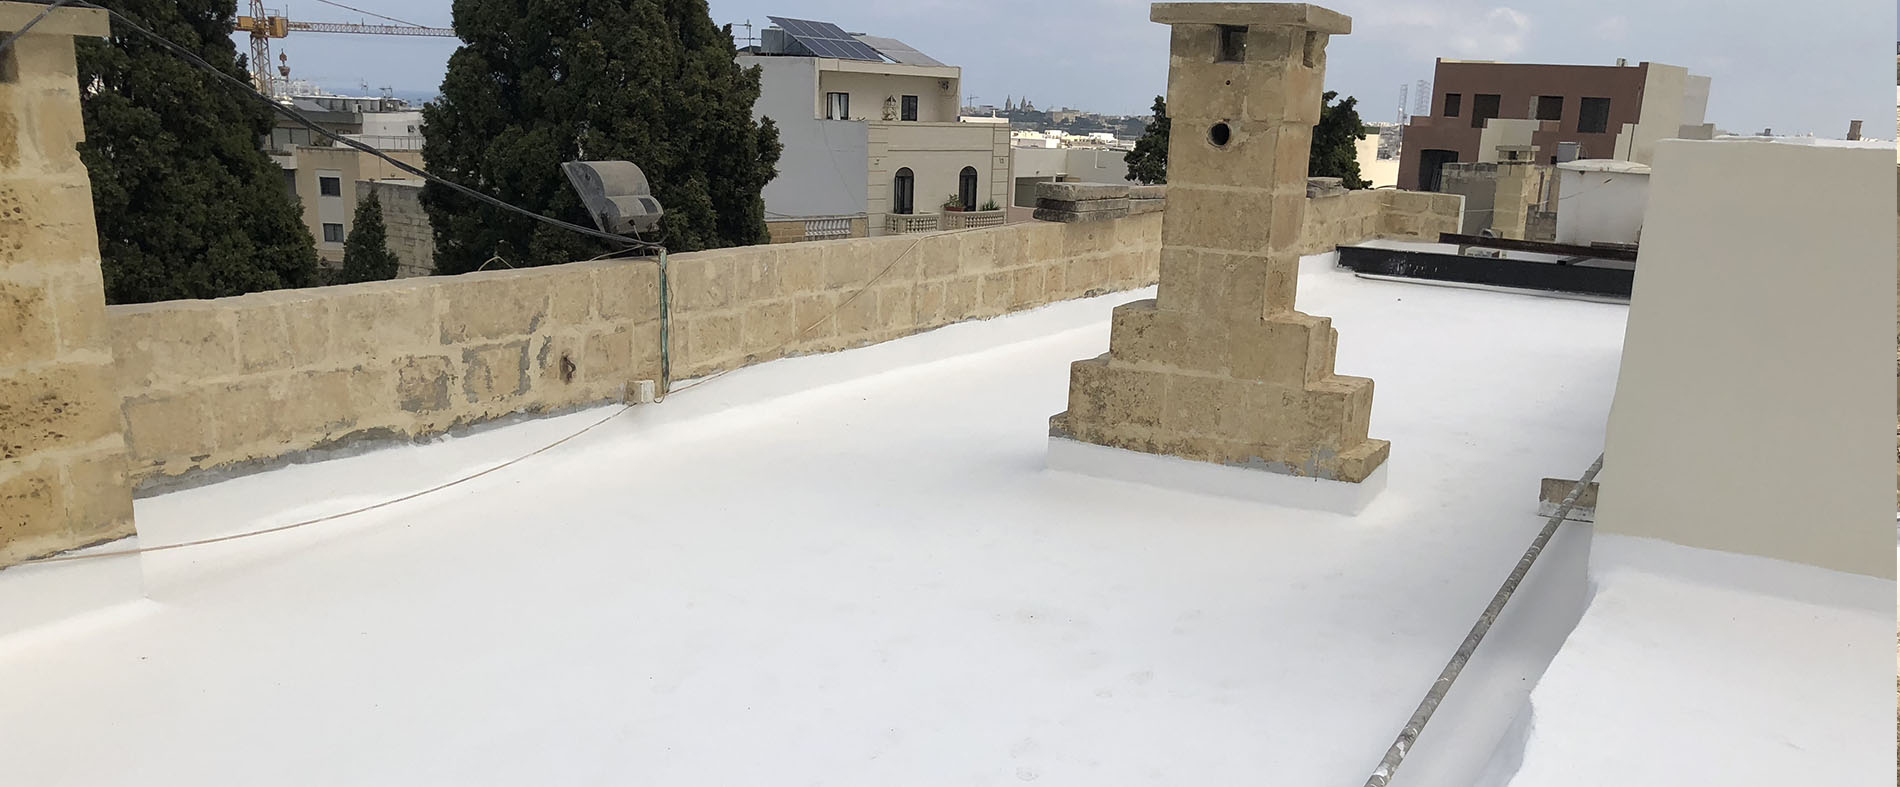 Waterproofing with thermal insulation membrane of 17th century palazzo. AFTER